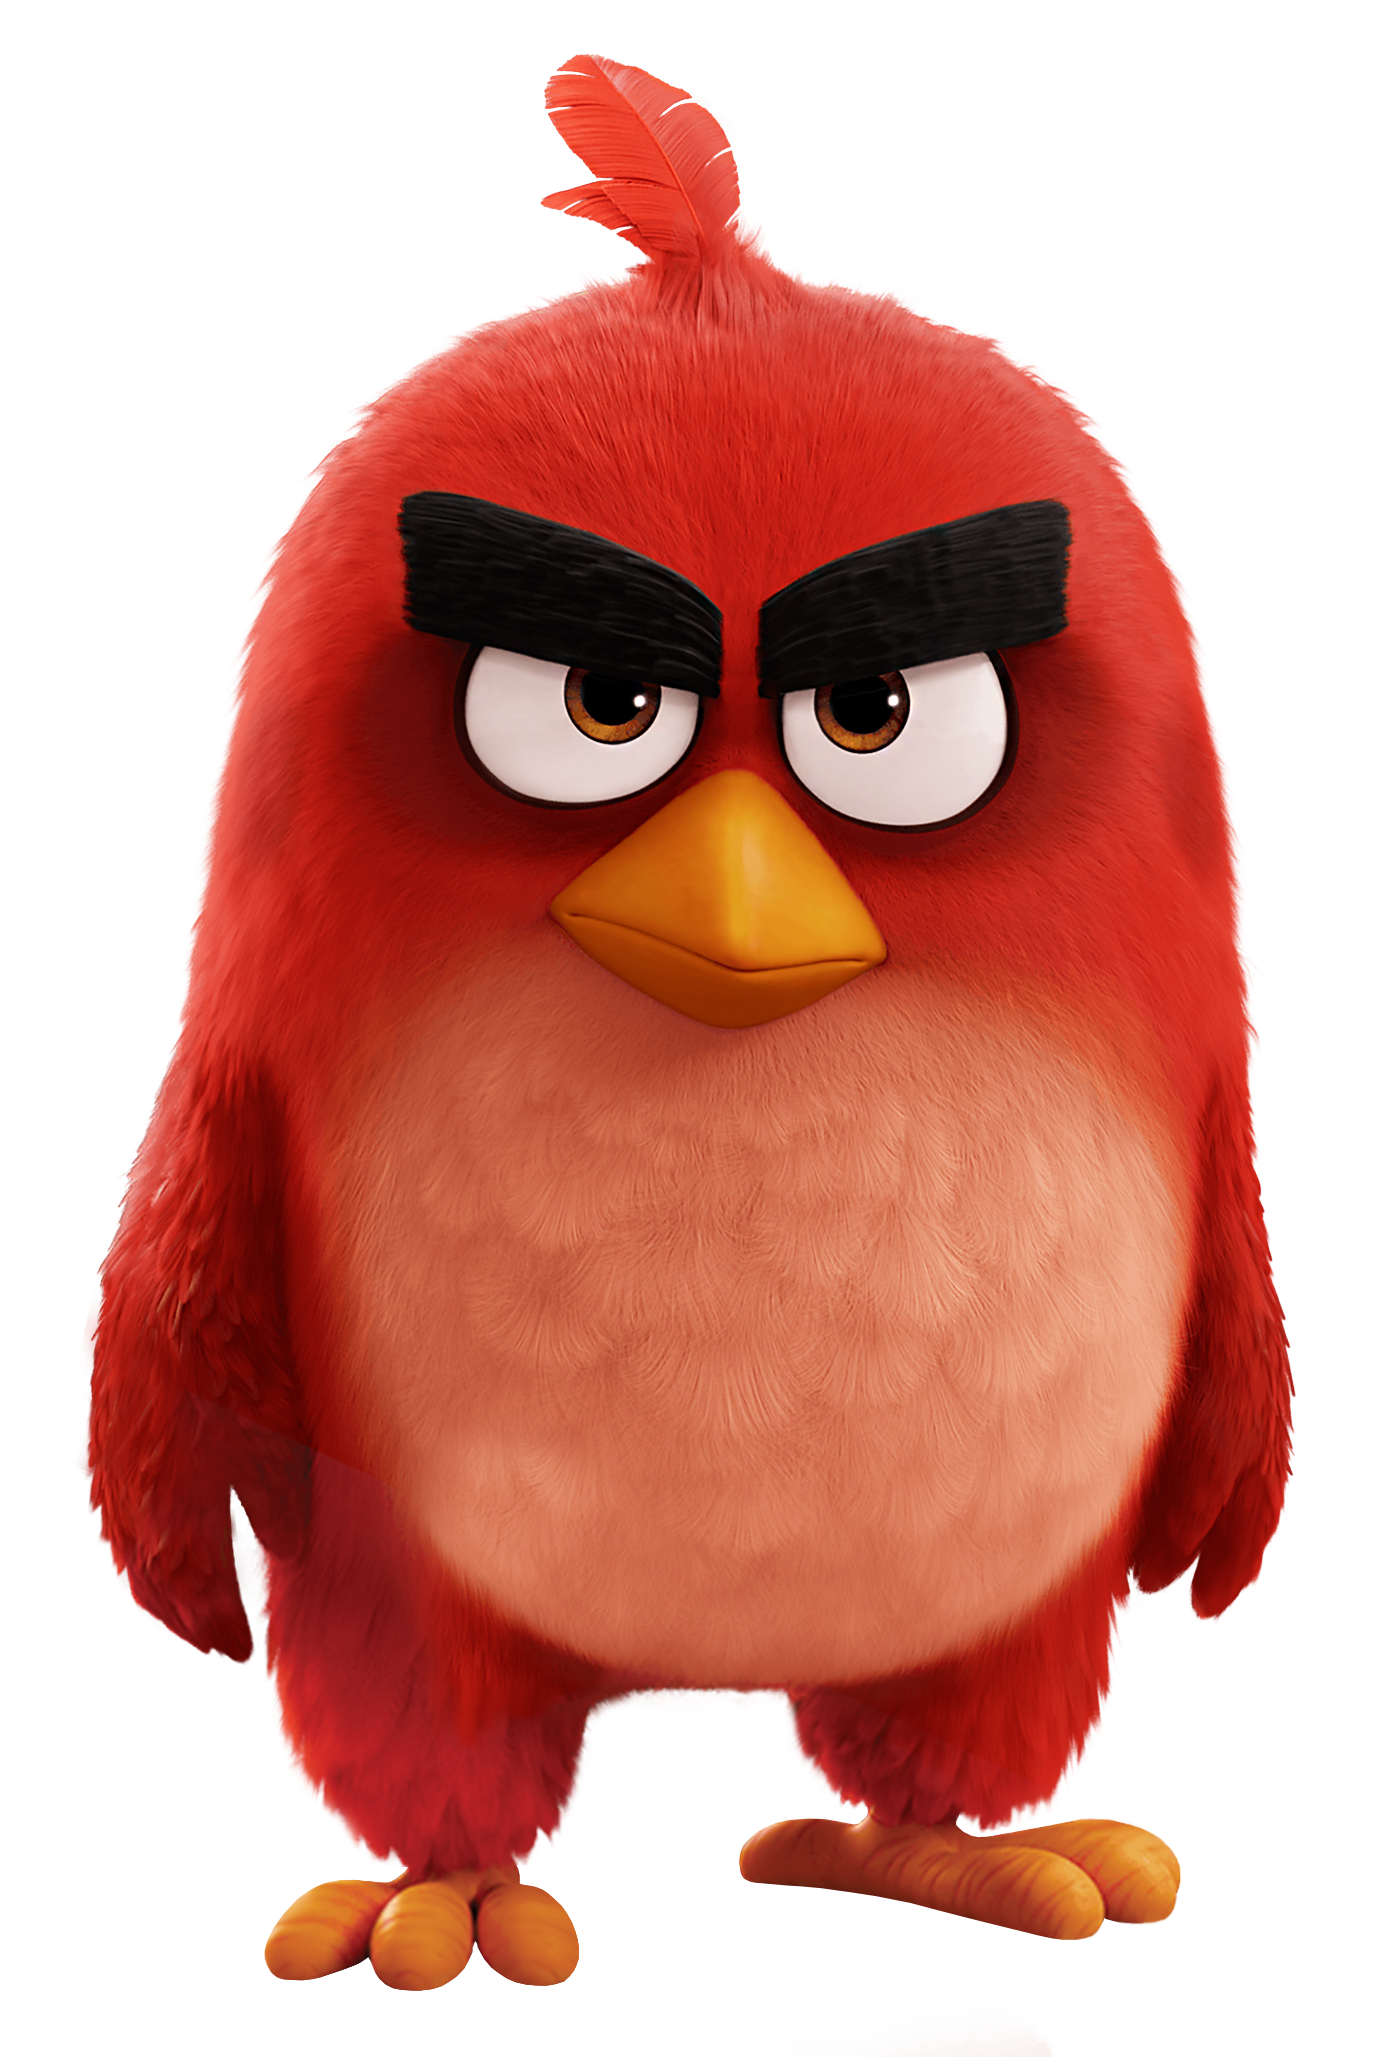 Red Bird The Angry Birds Movie Png Transparent Image Png 1377 2068 Fond D Ecran Dessin Dessin Anime Enfance Angry Birds